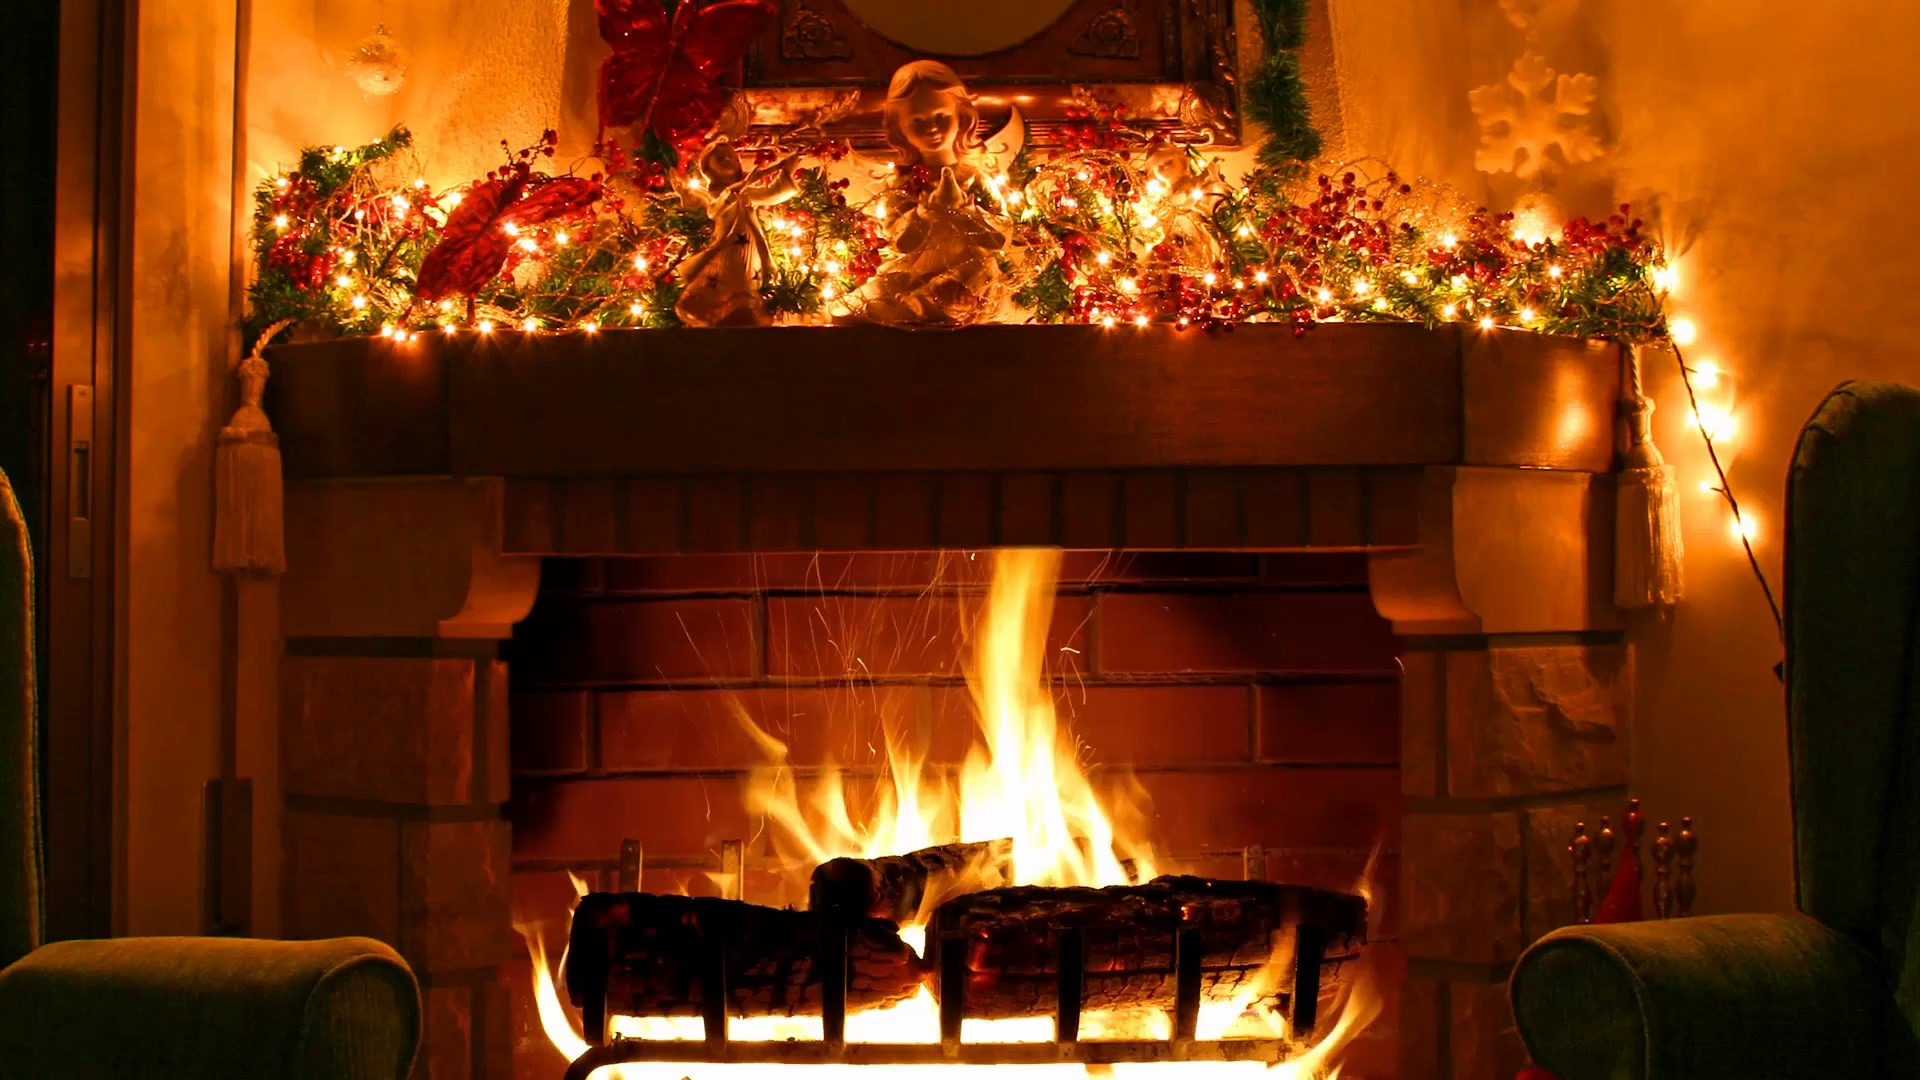 Fireplace   Christmas decoration Live Wallpapers 1920x1080